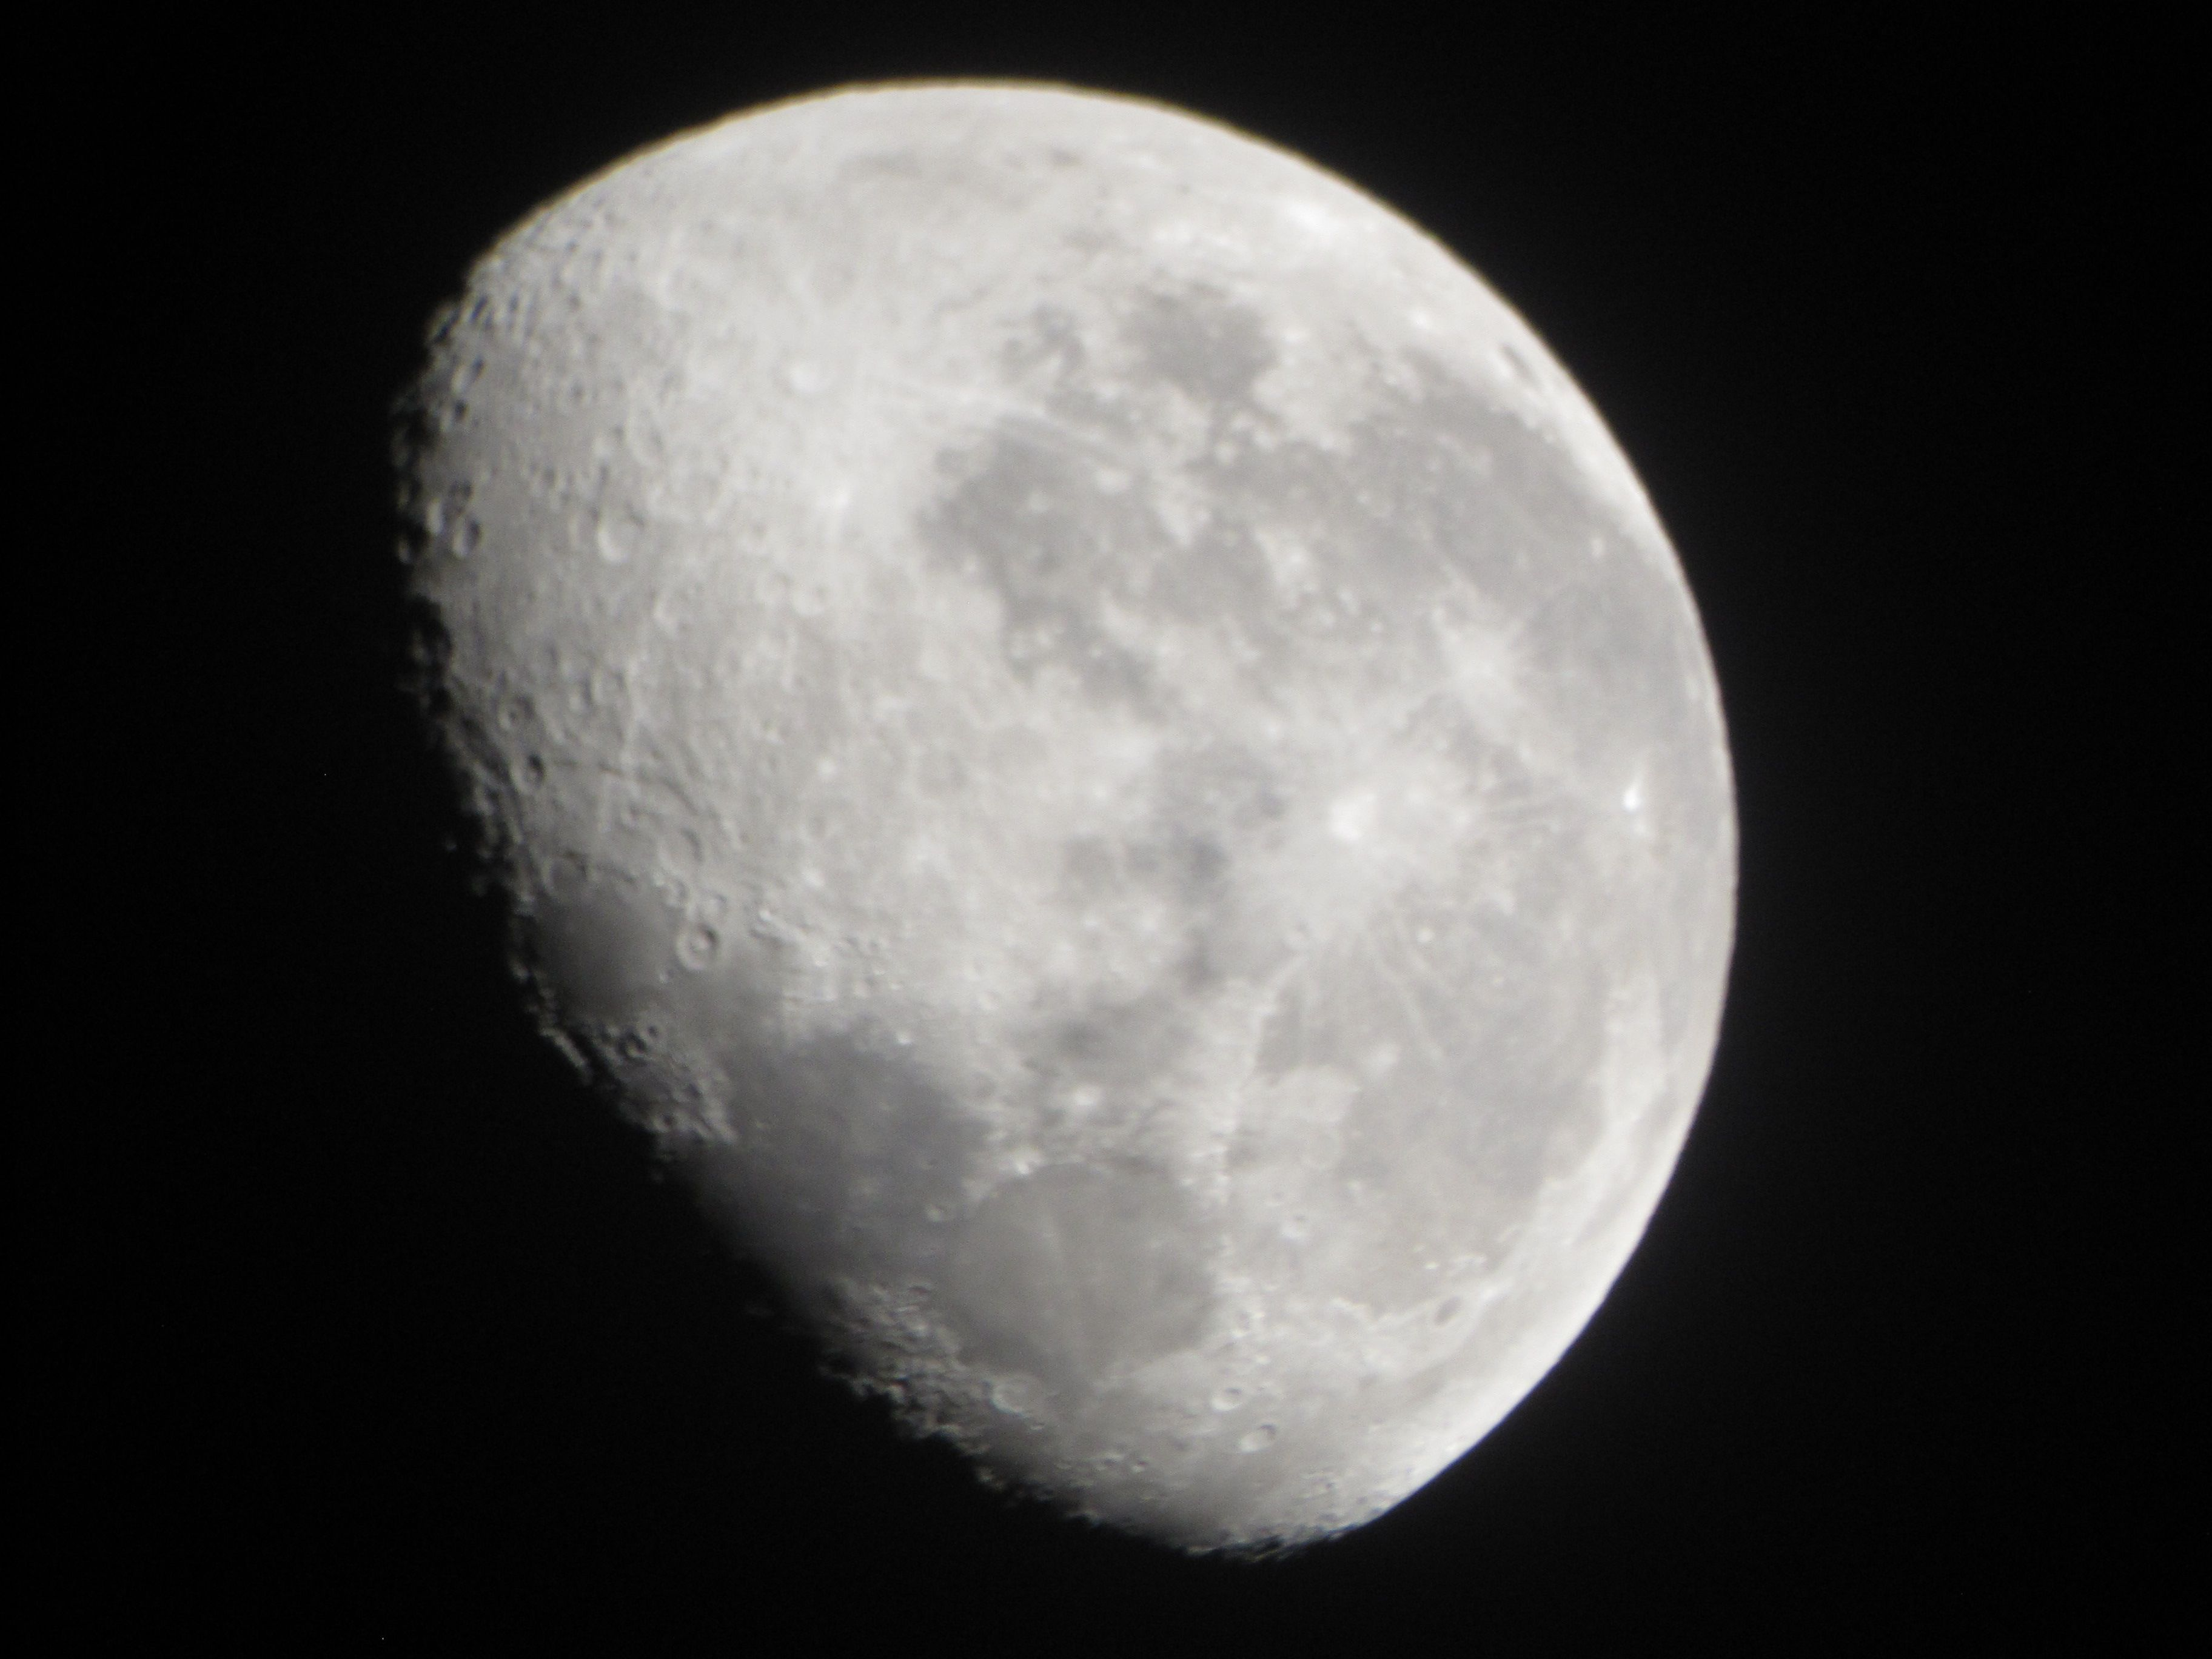 Another picture of the moon, more white